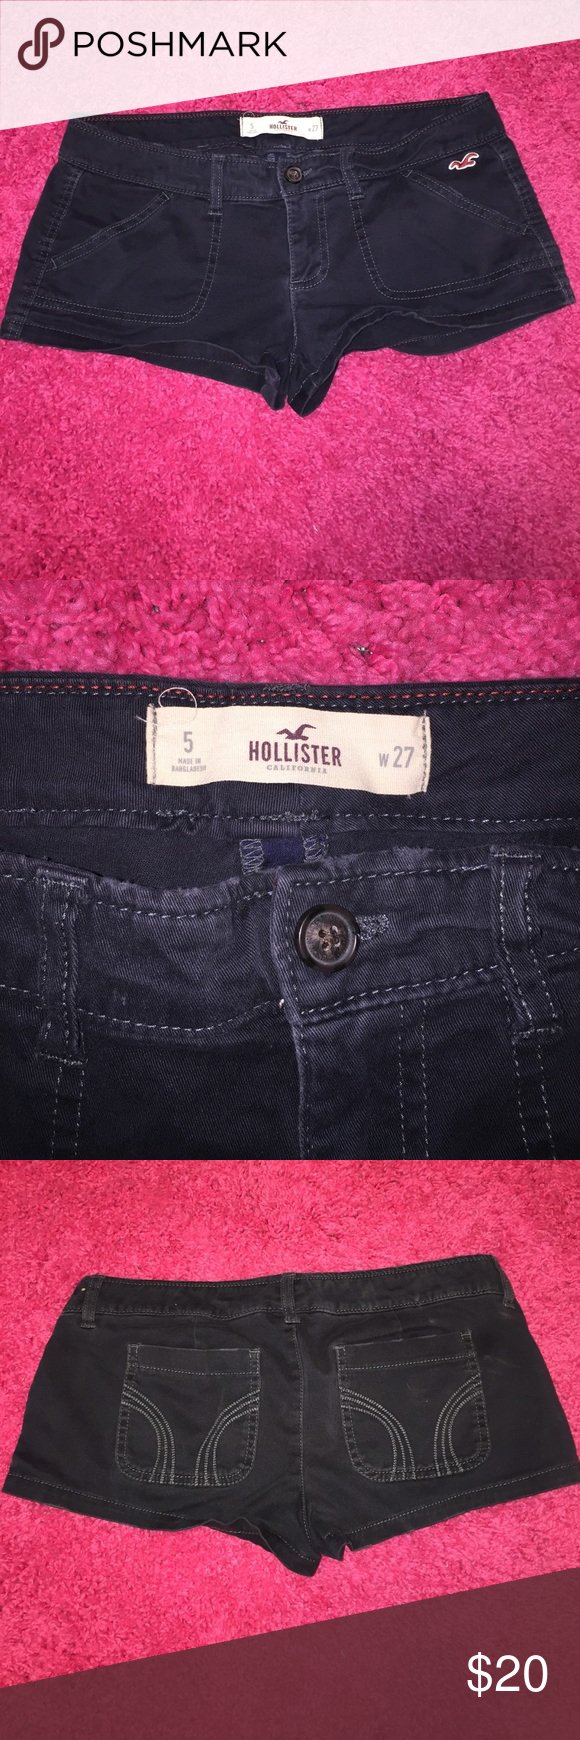 Navy Blue Hollister Shorts Cute Dark Navy Blue Hollister Shorts Size 27! Waist Measurement 15in. Inseam 2in. Rise 7in. Made of 98% Cotton 2% Elastane. They are in perfect condition no rips, holes, or stains! Hollister Shorts Jean Shorts